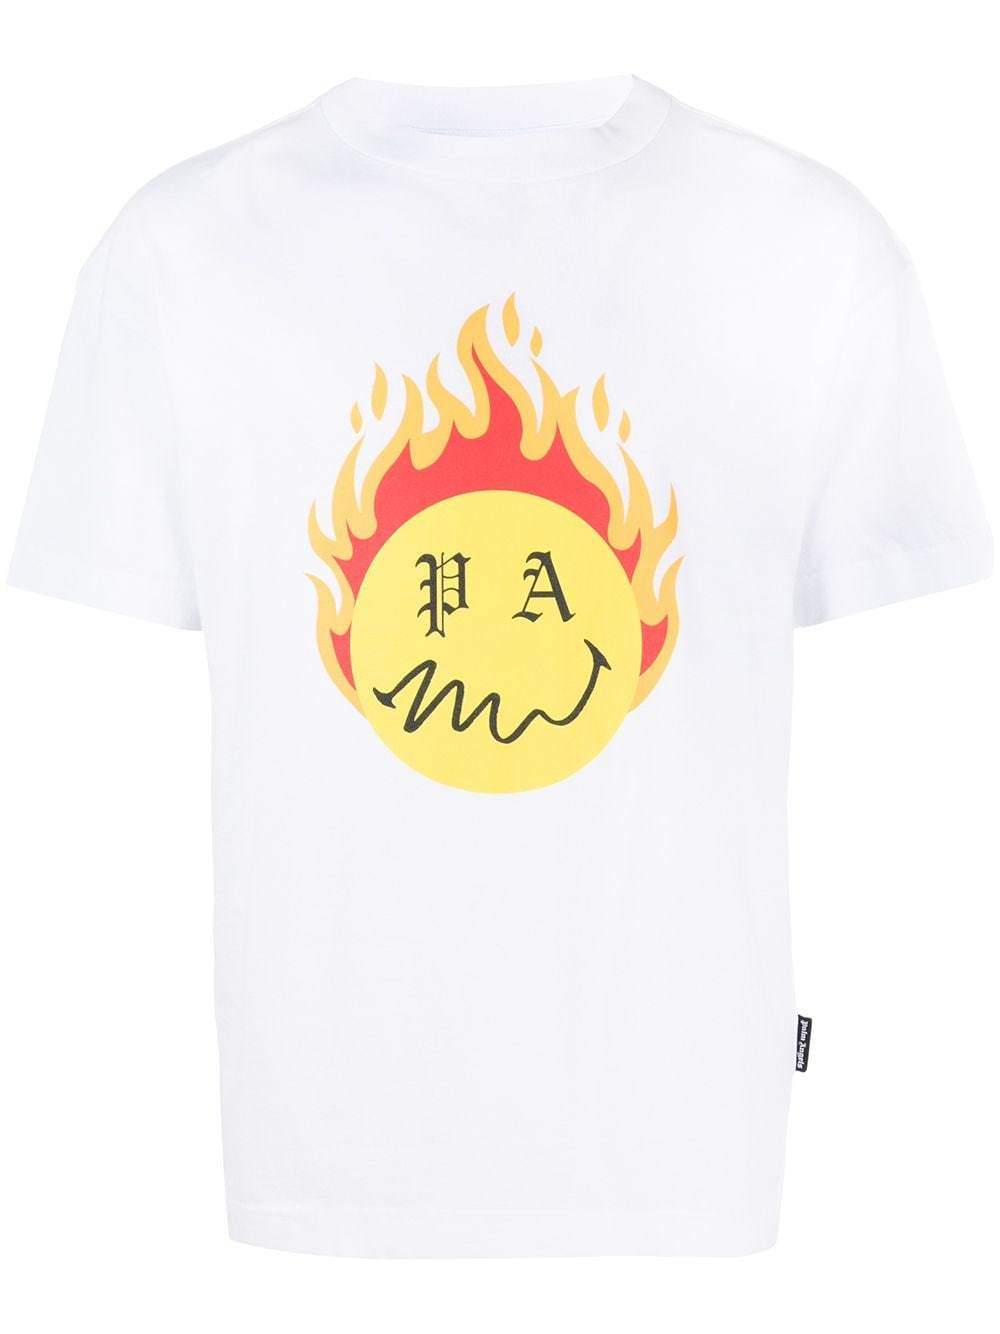 PALM ANGELS Burning Head T-Shirt White - Maison De Fashion